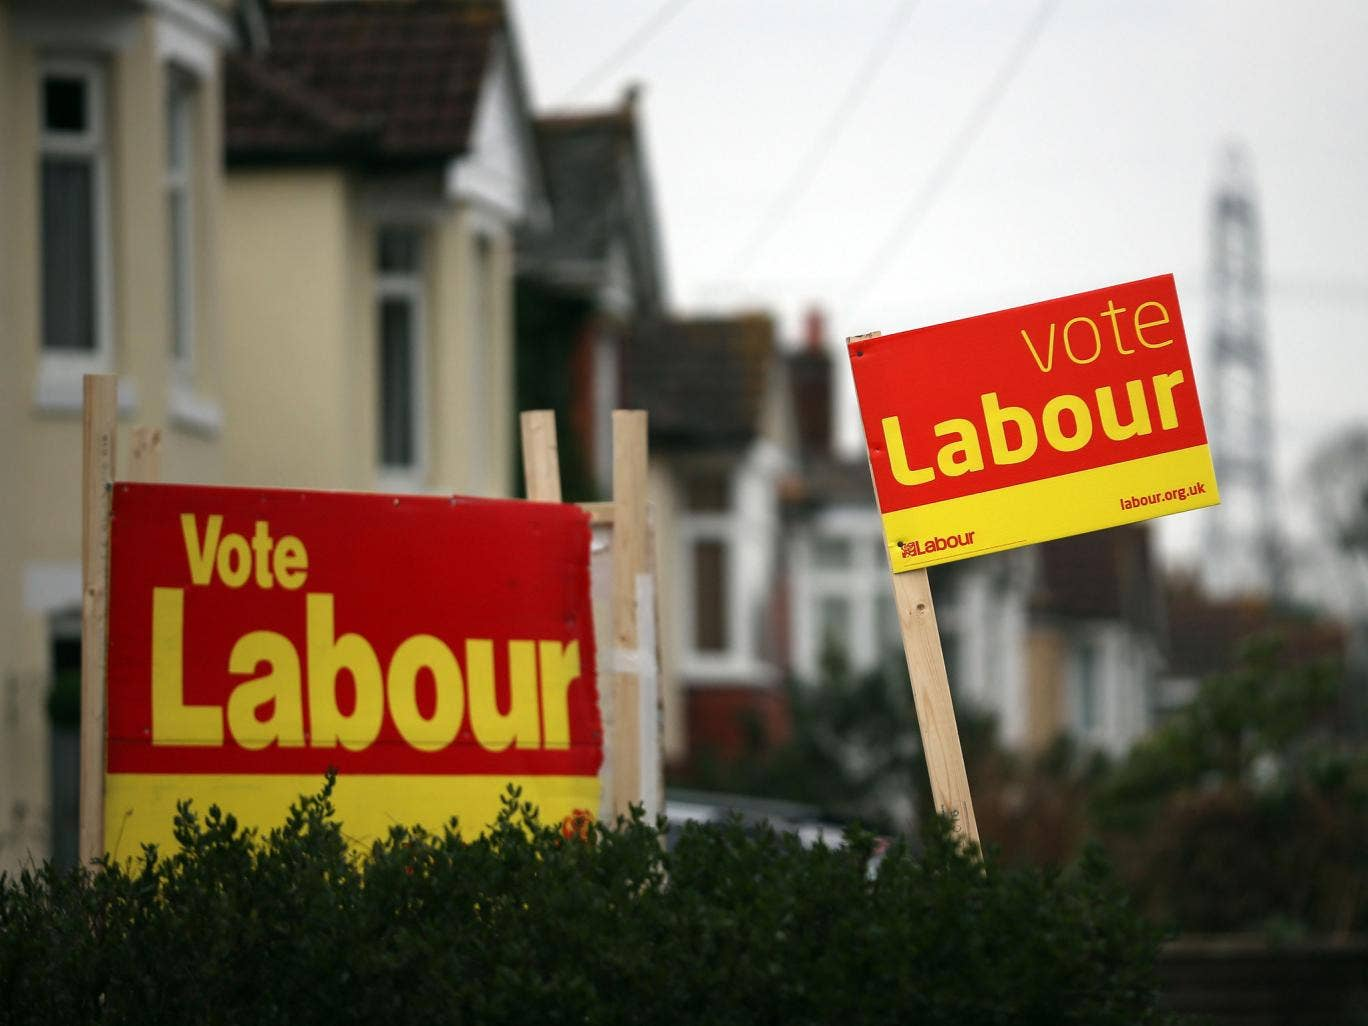 The Labour lead is now at its lowest level since February 2012